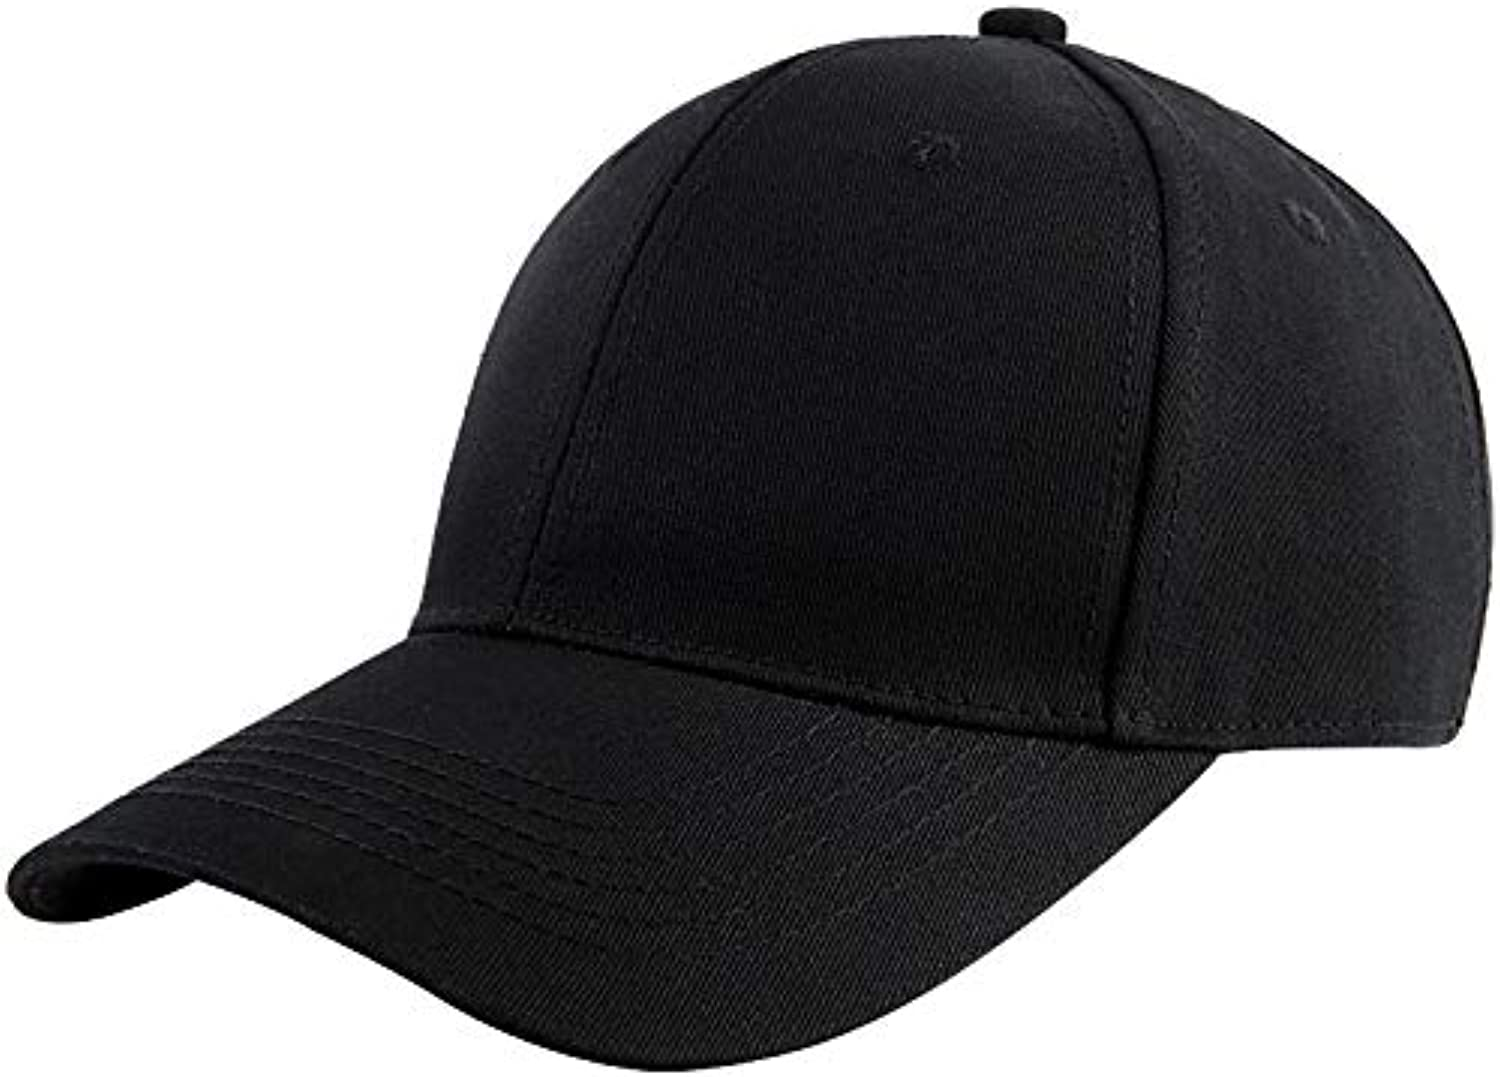 Sunhat Autumn and Winter New Version of The Simple Version of The Fashion Baseball Cap Suede Hat Tide